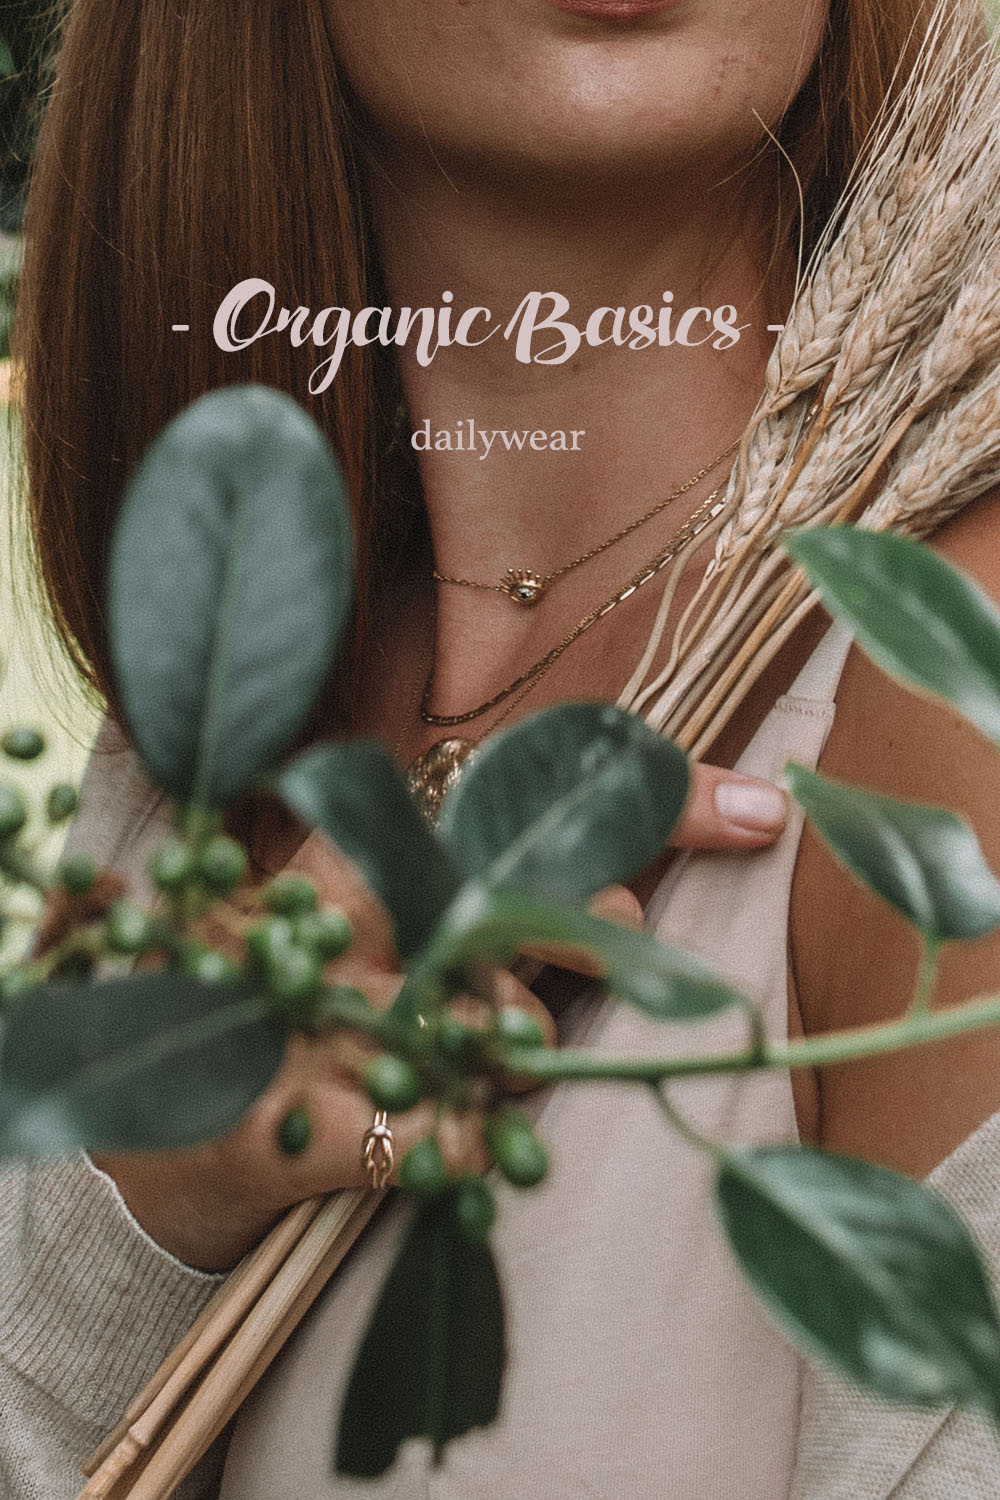 Organic Basics Linda's Wholesome Life